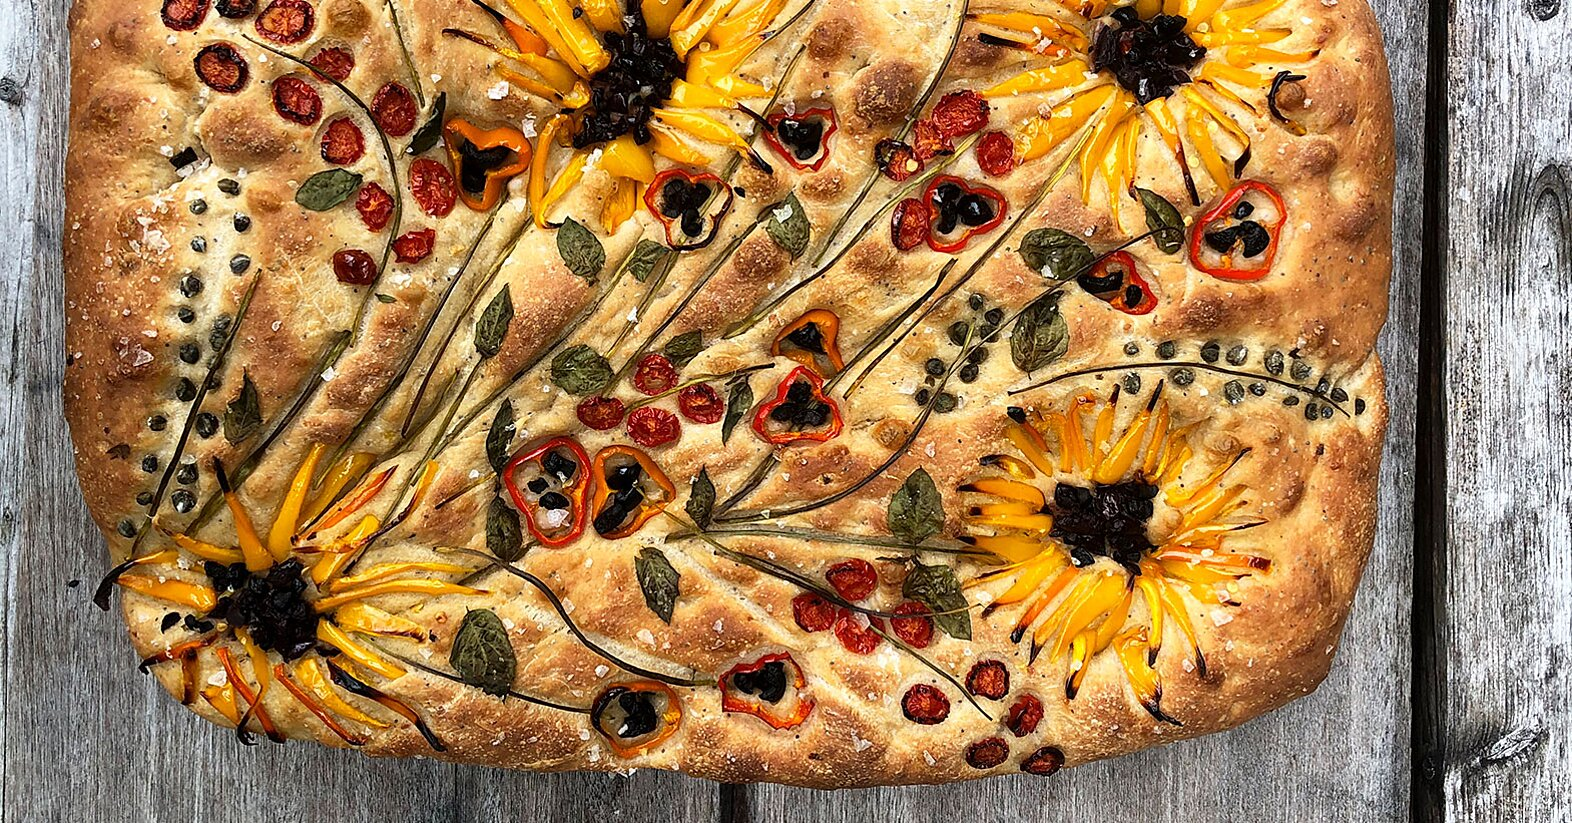 Focaccia Art Is the Prettiest (and Tastiest) Food Trend Taking Over Social Media